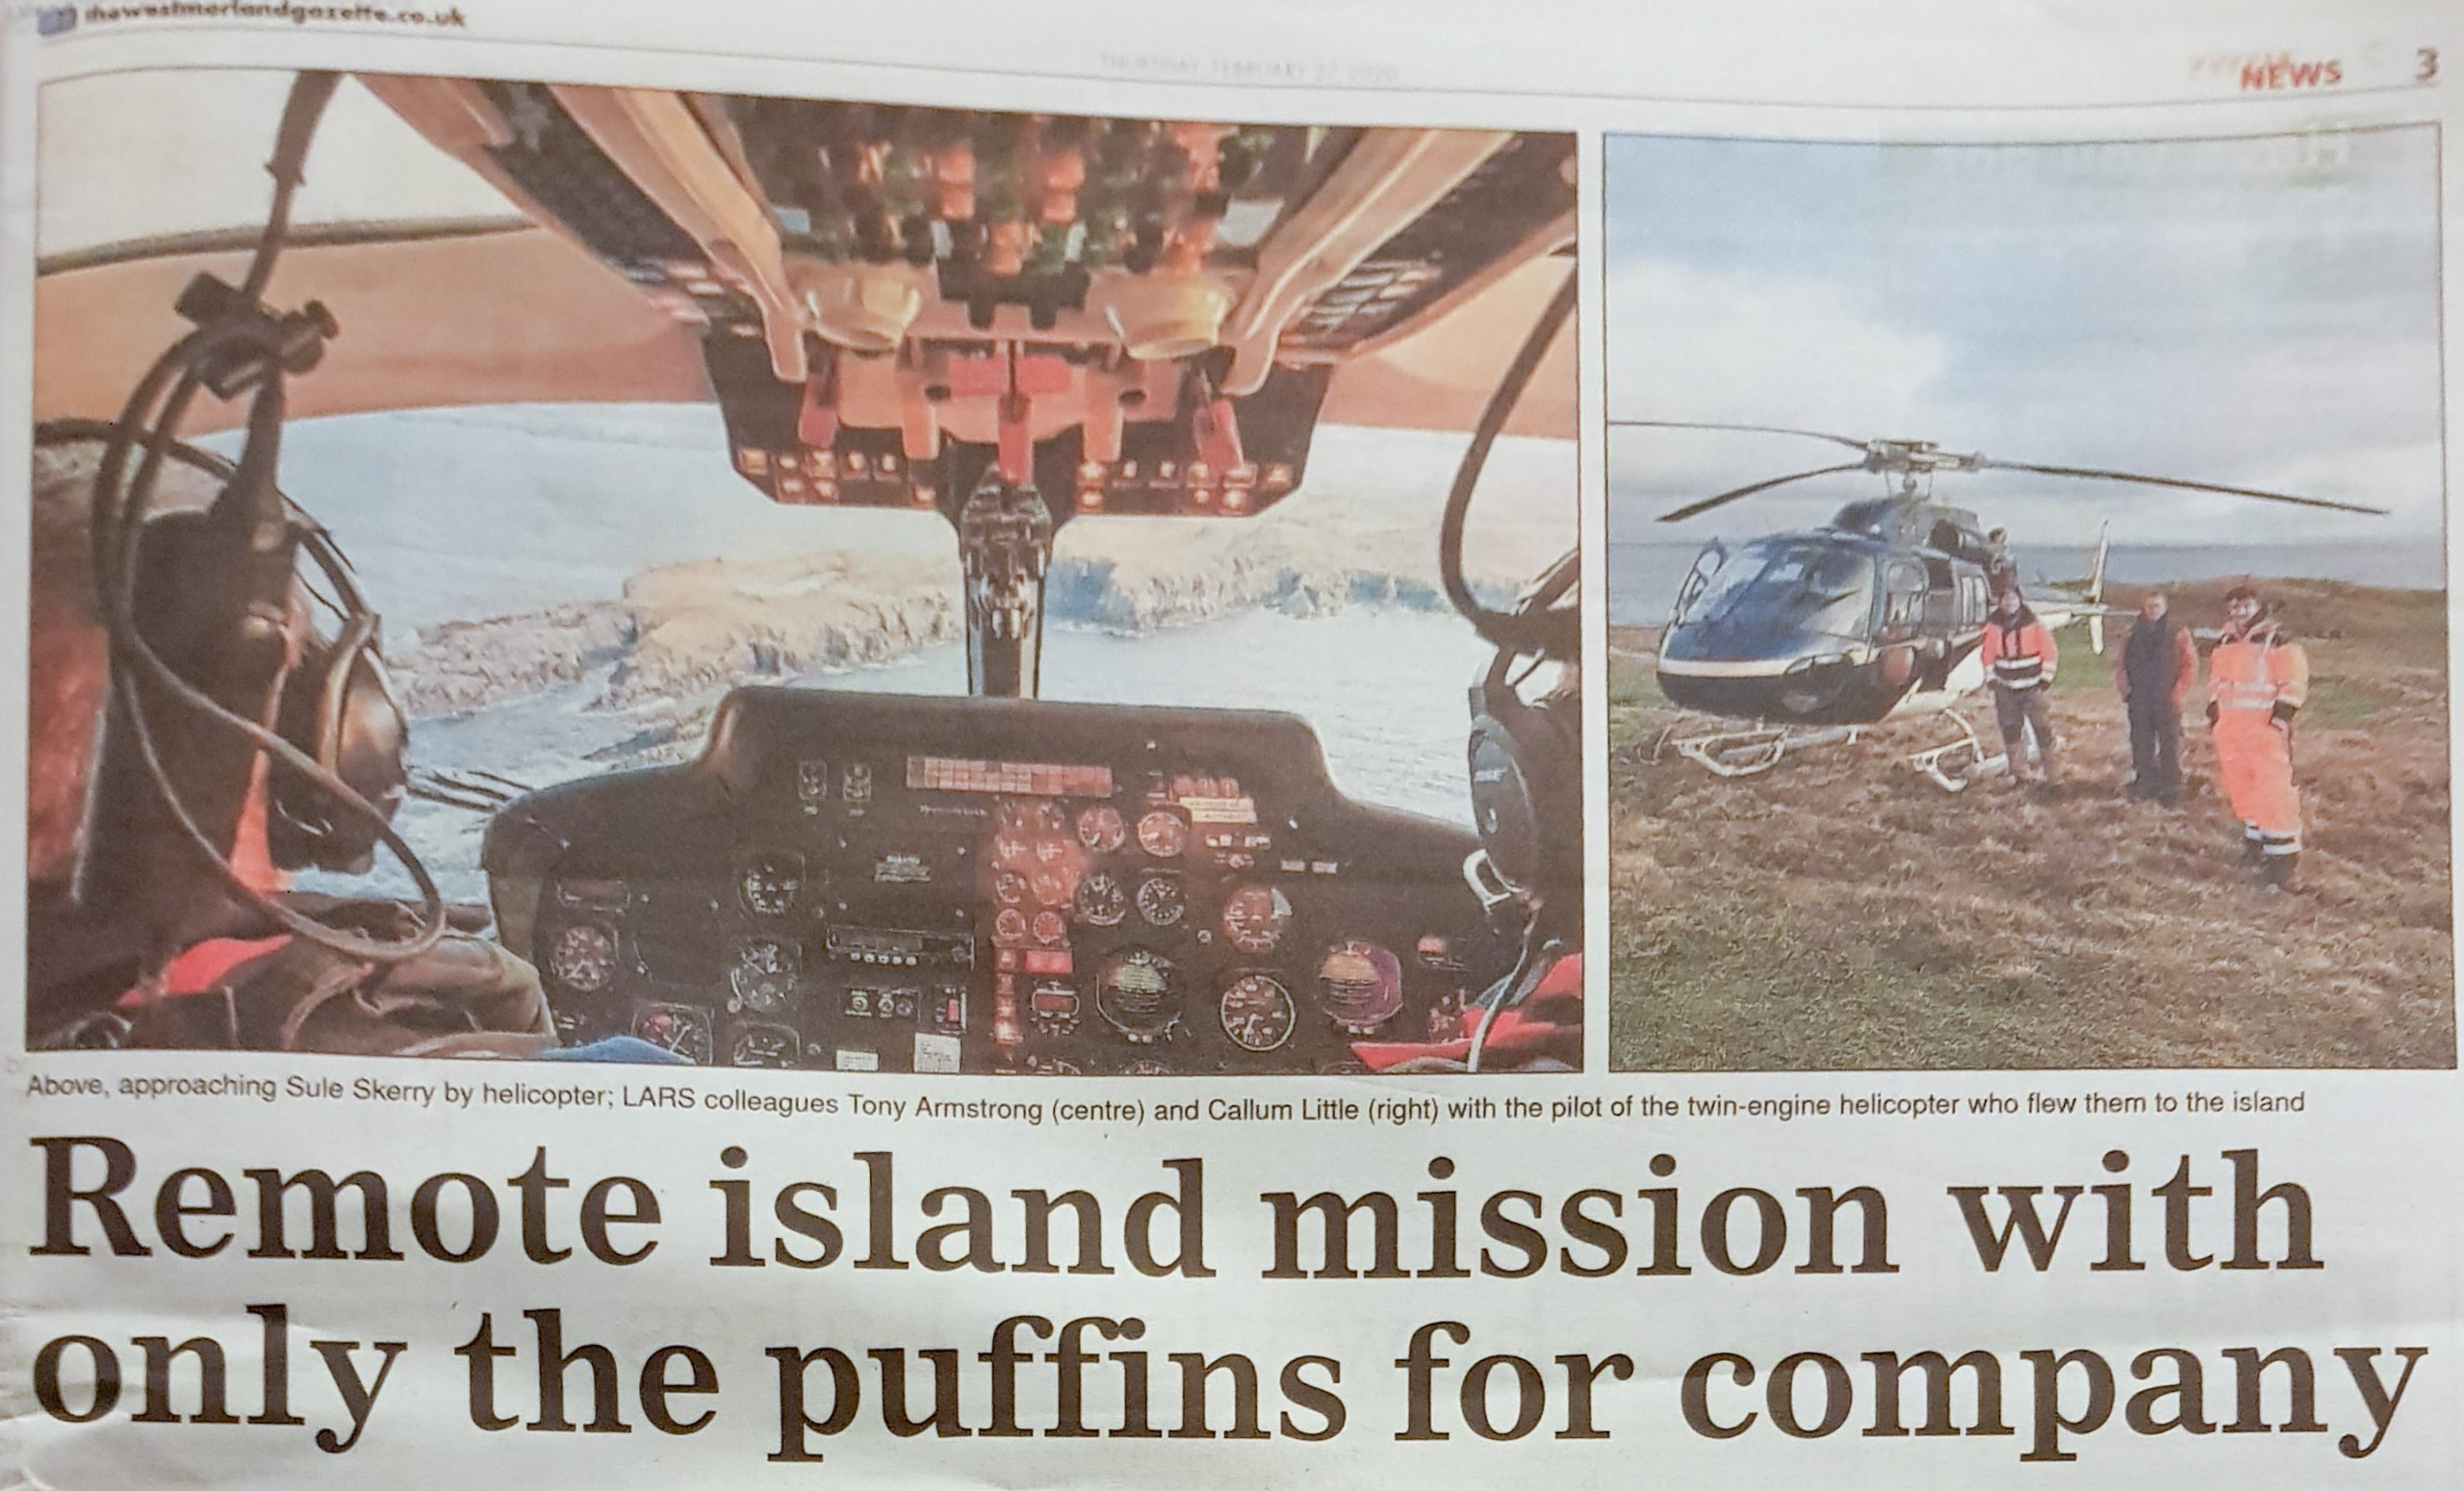 LARS Communucations' trip to Sule Skerry was featured on page 3 of the Westmorland Gazettte newspaper